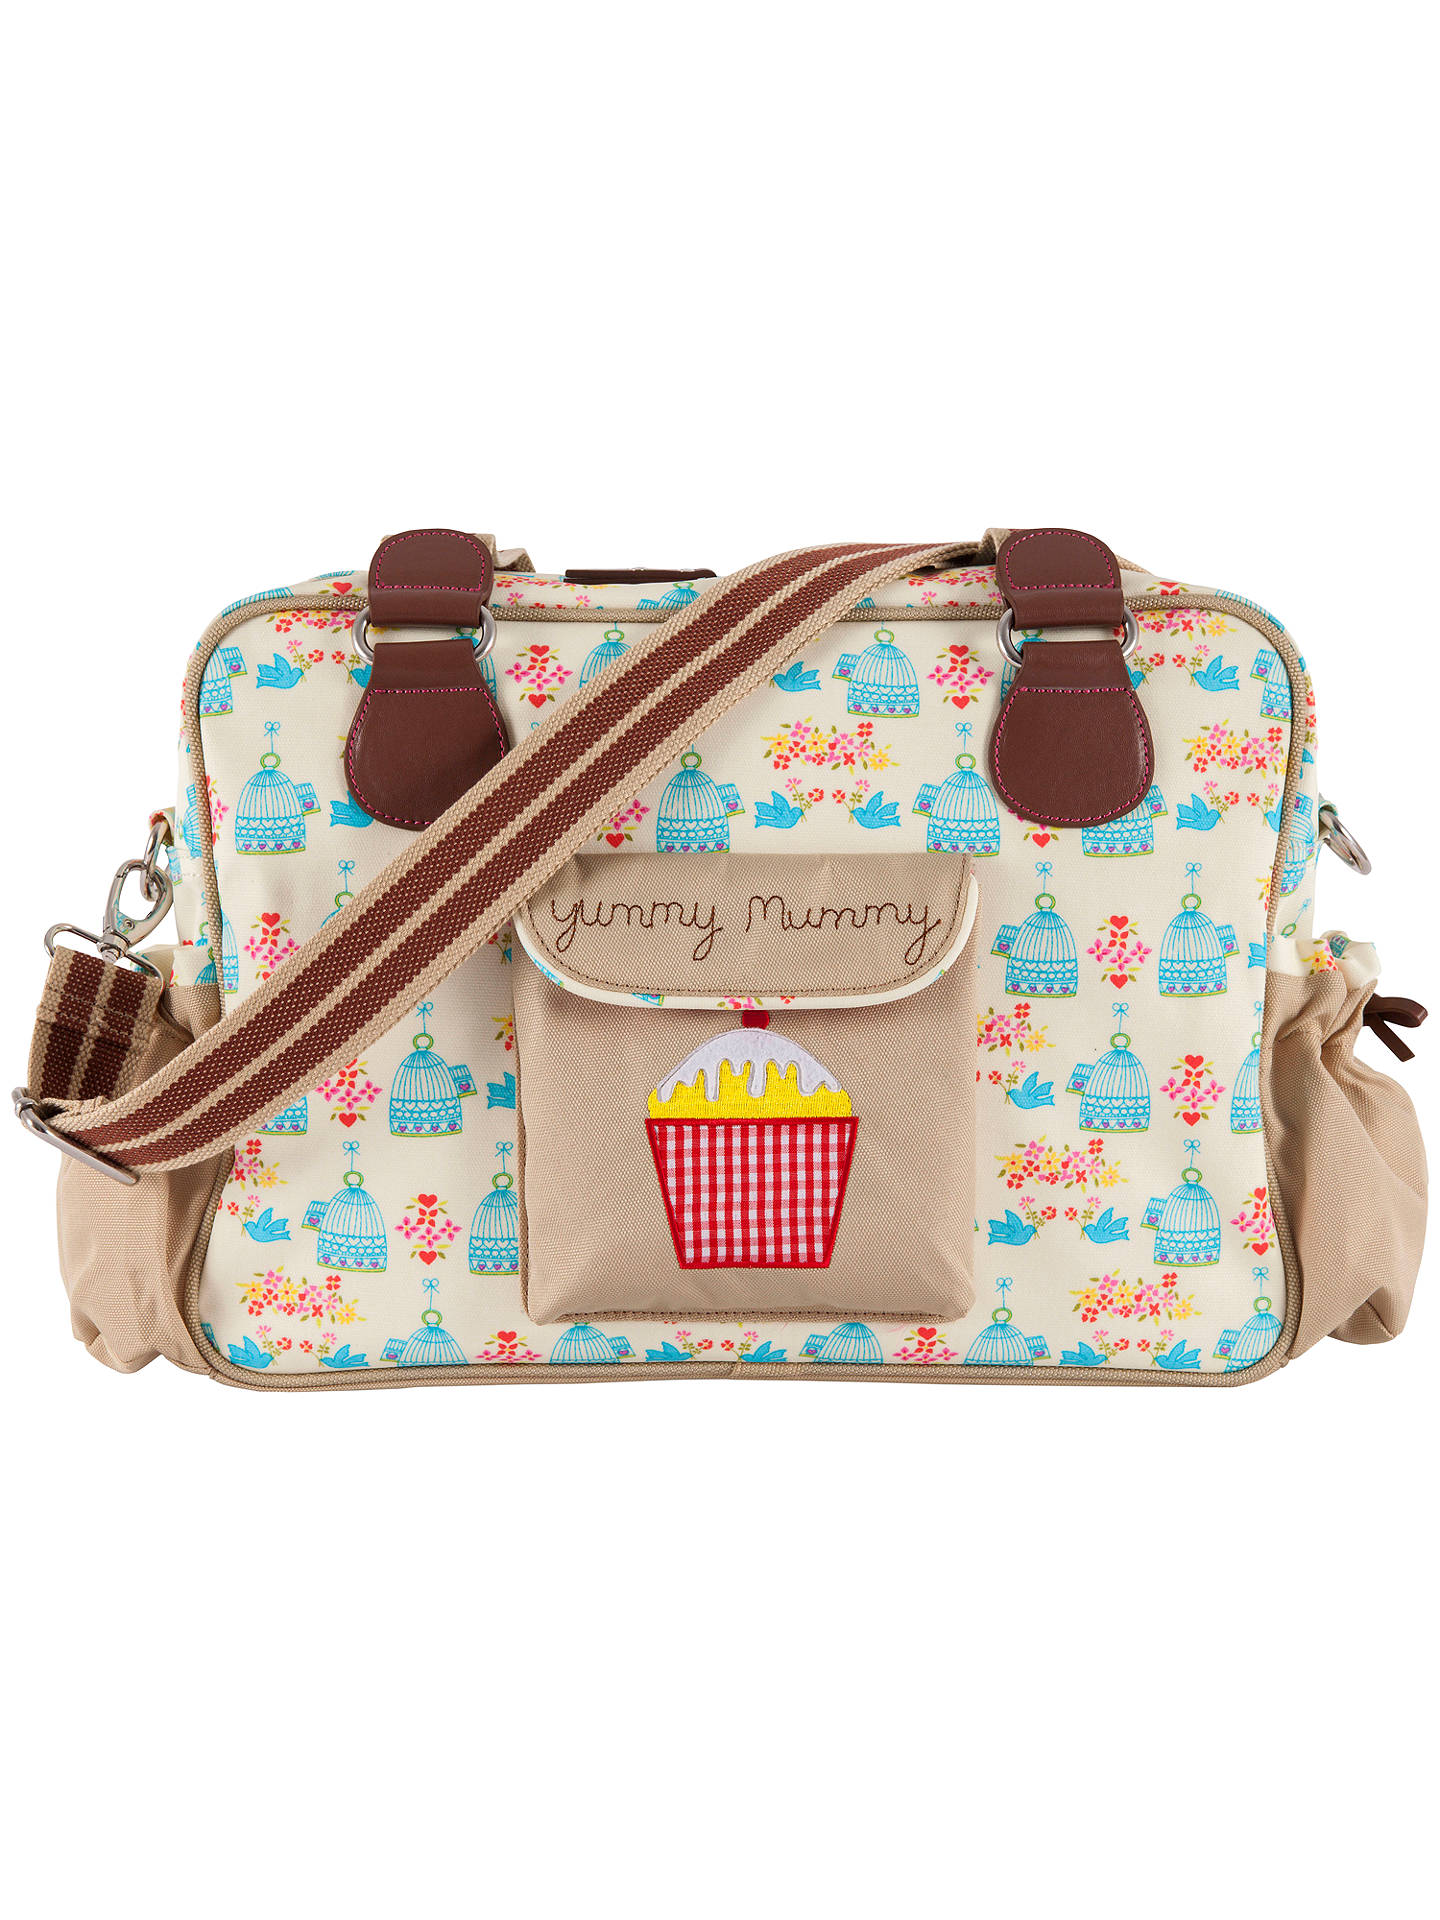 Yummy mummy purse